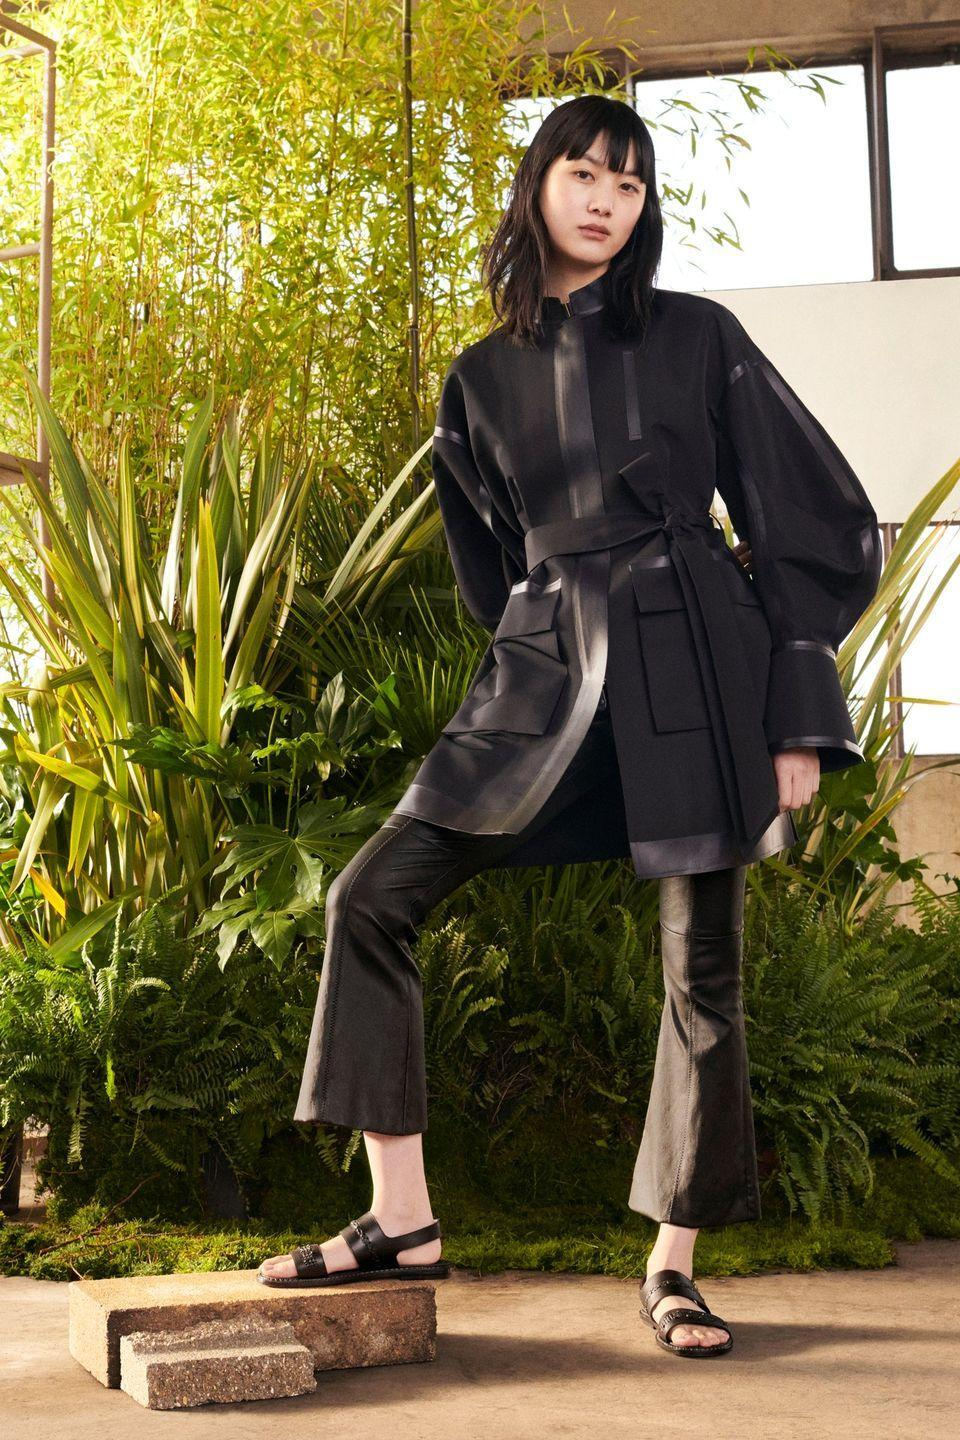 "<p>Italian luxury brand Tod's has unveiled a new collaboration as part of its of T Factory series, which first saw <a href=""https://www.elle.com/uk/fashion/a28869411/alber-elbaz-tods-collection/"" rel=""nofollow noopener"" target=""_blank"" data-ylk=""slk:Alber Elbaz"" class=""link rapid-noclick-resp"">Alber Elbaz</a> launch a capsule collection last year.</p><p>This time, Tod's has partnered with Japanese designer Mame Kurogouchi. Kurogouchi, based in Tokyo, cleverly fuses romanticism with Japanese tradition in a way that's modern. Her work is soft and light, with gauzy dresses and richly coloured silks. Her work is understatedly cool too. </p><p>That's what Kurogouchi will bring to Tod's signature styles with this collaboration, reinterpreting its gum-soled driving shoe, as well as designing original accessories. </p><p>'I think craftsmanship is the new logo,' the designer says. So the styles, like those at her own brand, feature minimal branding, letting details such as a leather embroidery technique that echoes traditional kogin zashi quilting stand out. <br></p><p><a href=""https://go.redirectingat.com?id=127X1599956&url=https%3A%2F%2Fwww.tods.com%2Fus-en%2Fhome.html&sref=https%3A%2F%2Fwww.elle.com%2Fuk%2Ffashion%2Fg31095508%2Findustry-update%2F"" rel=""nofollow noopener"" target=""_blank"" data-ylk=""slk:Tods.com"" class=""link rapid-noclick-resp"">Tods.com </a></p>"